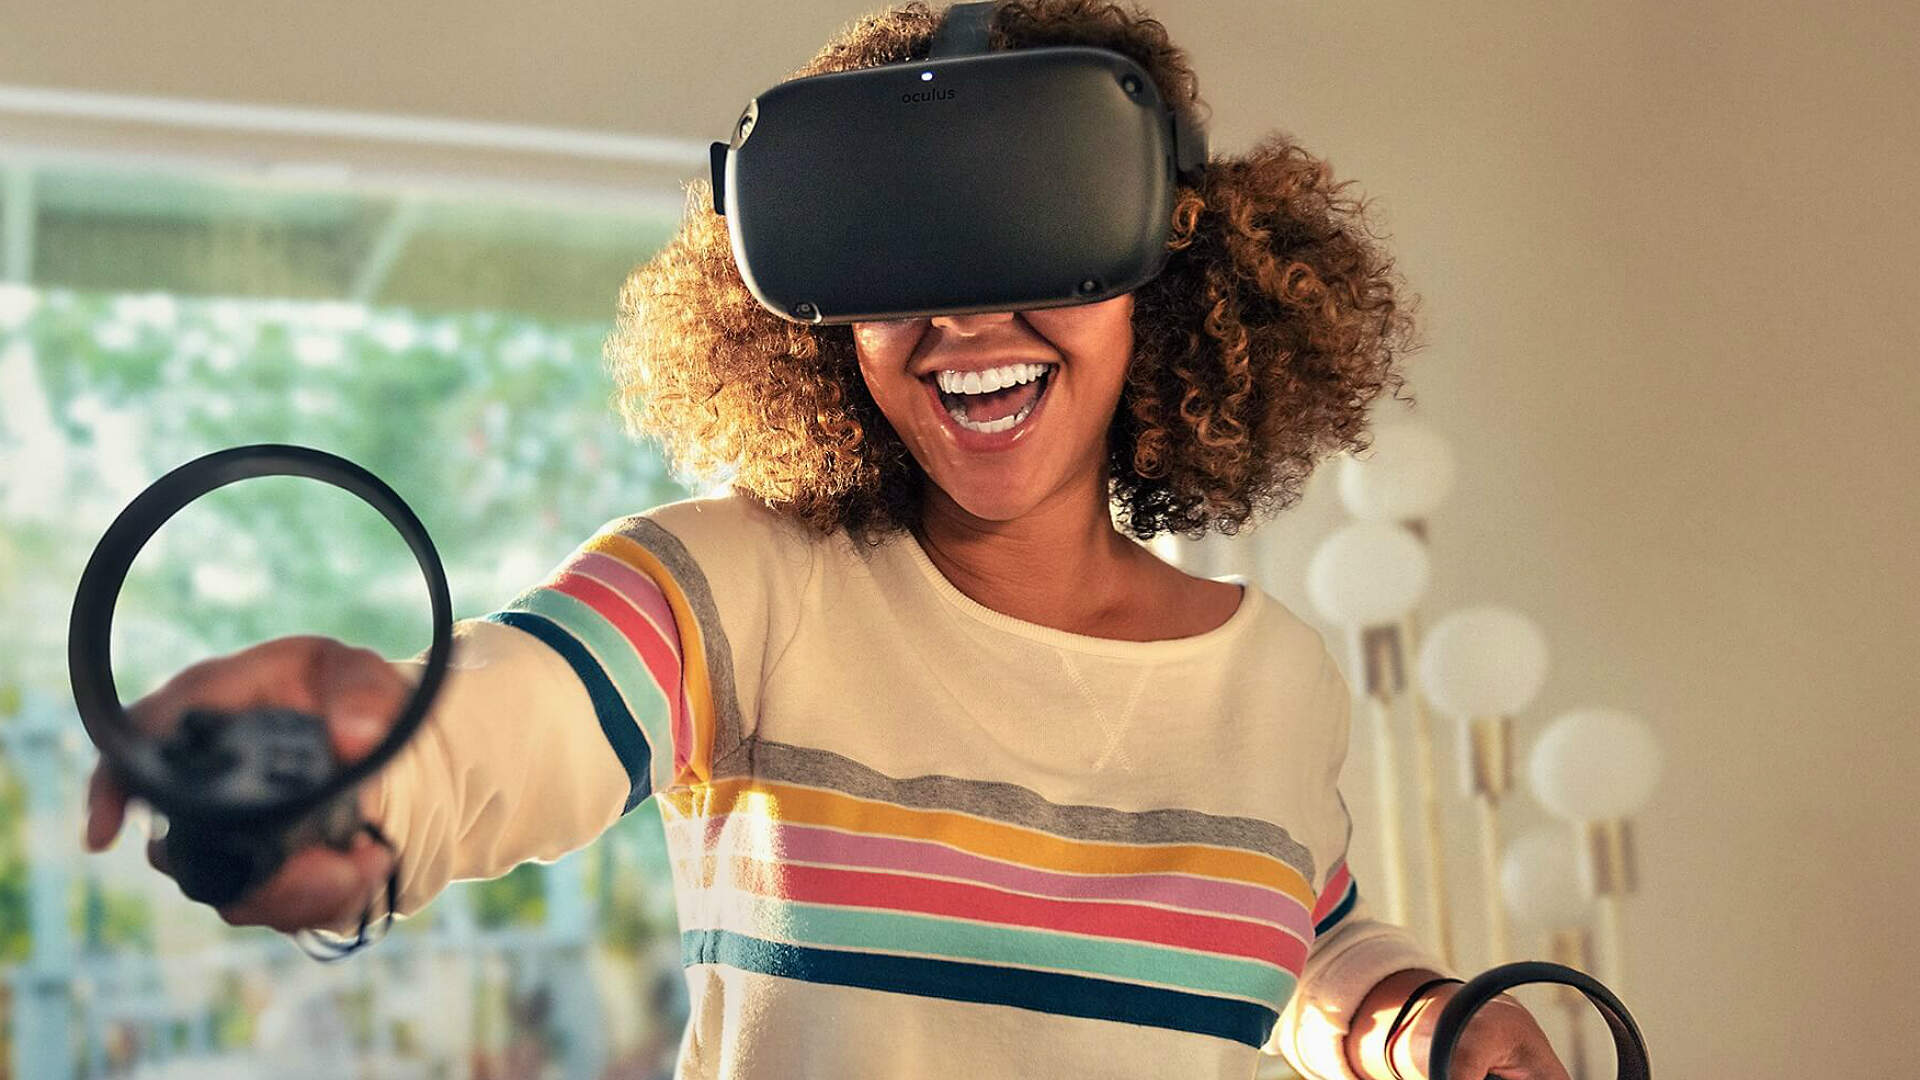 Report: New Oculus Quest in Development, May Be Pushed to 2021